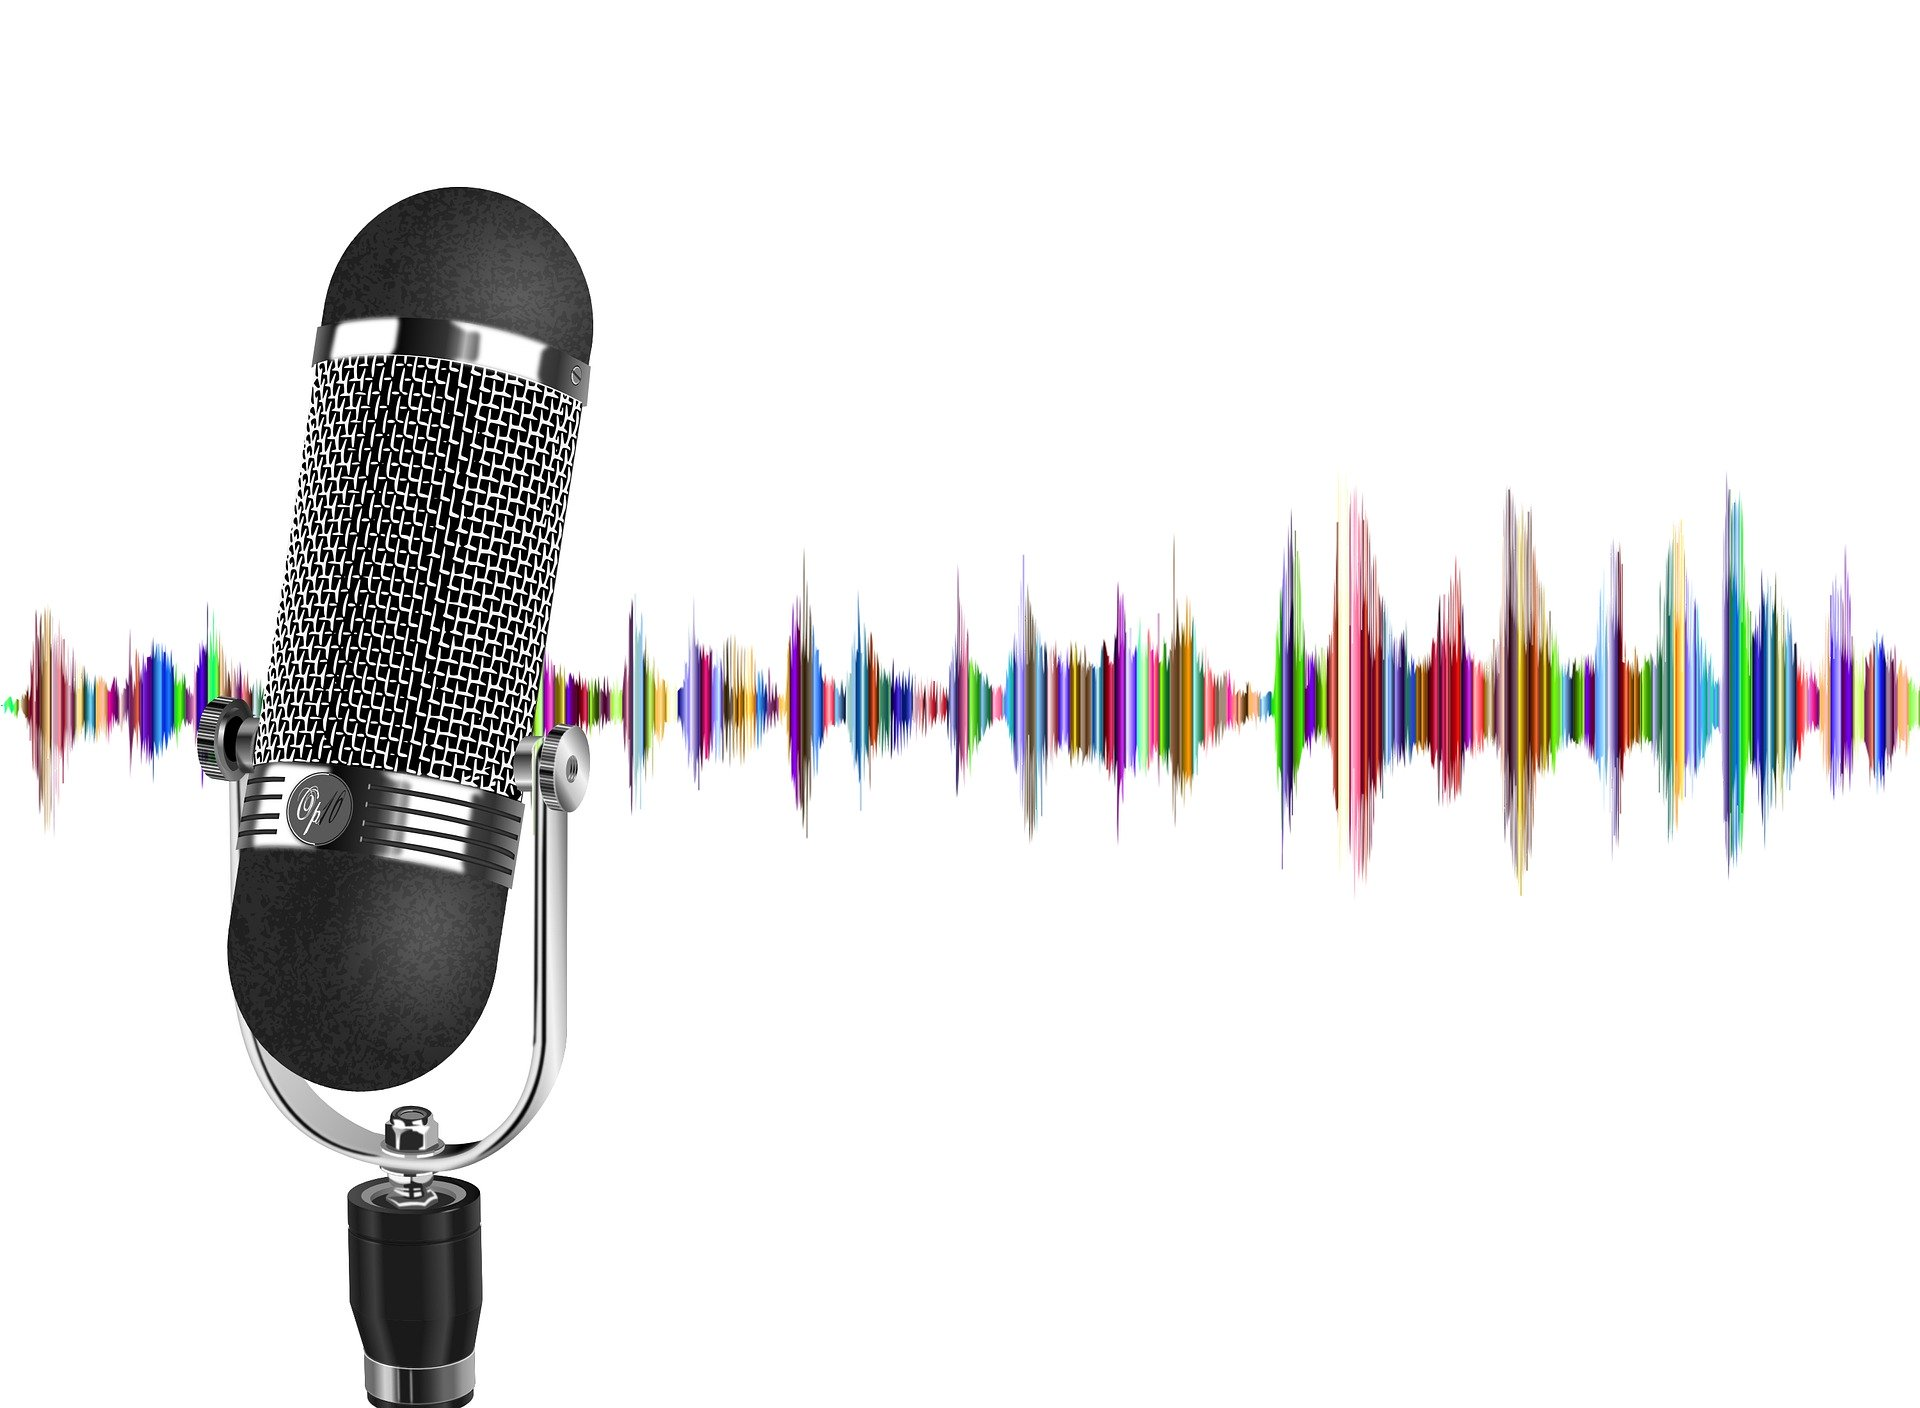 diversity and inclusion podcasts